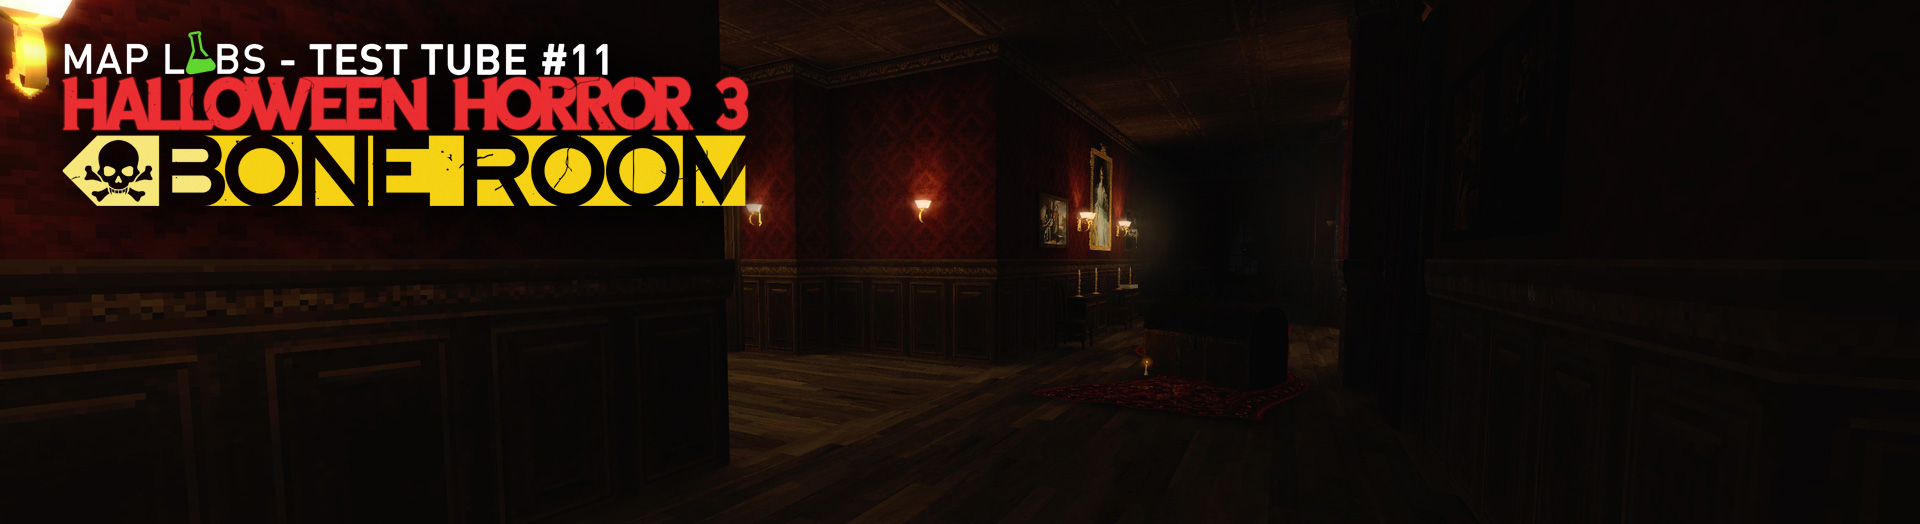 Halloween Horror 3: Bone Room - Map Labs Test Tube #11